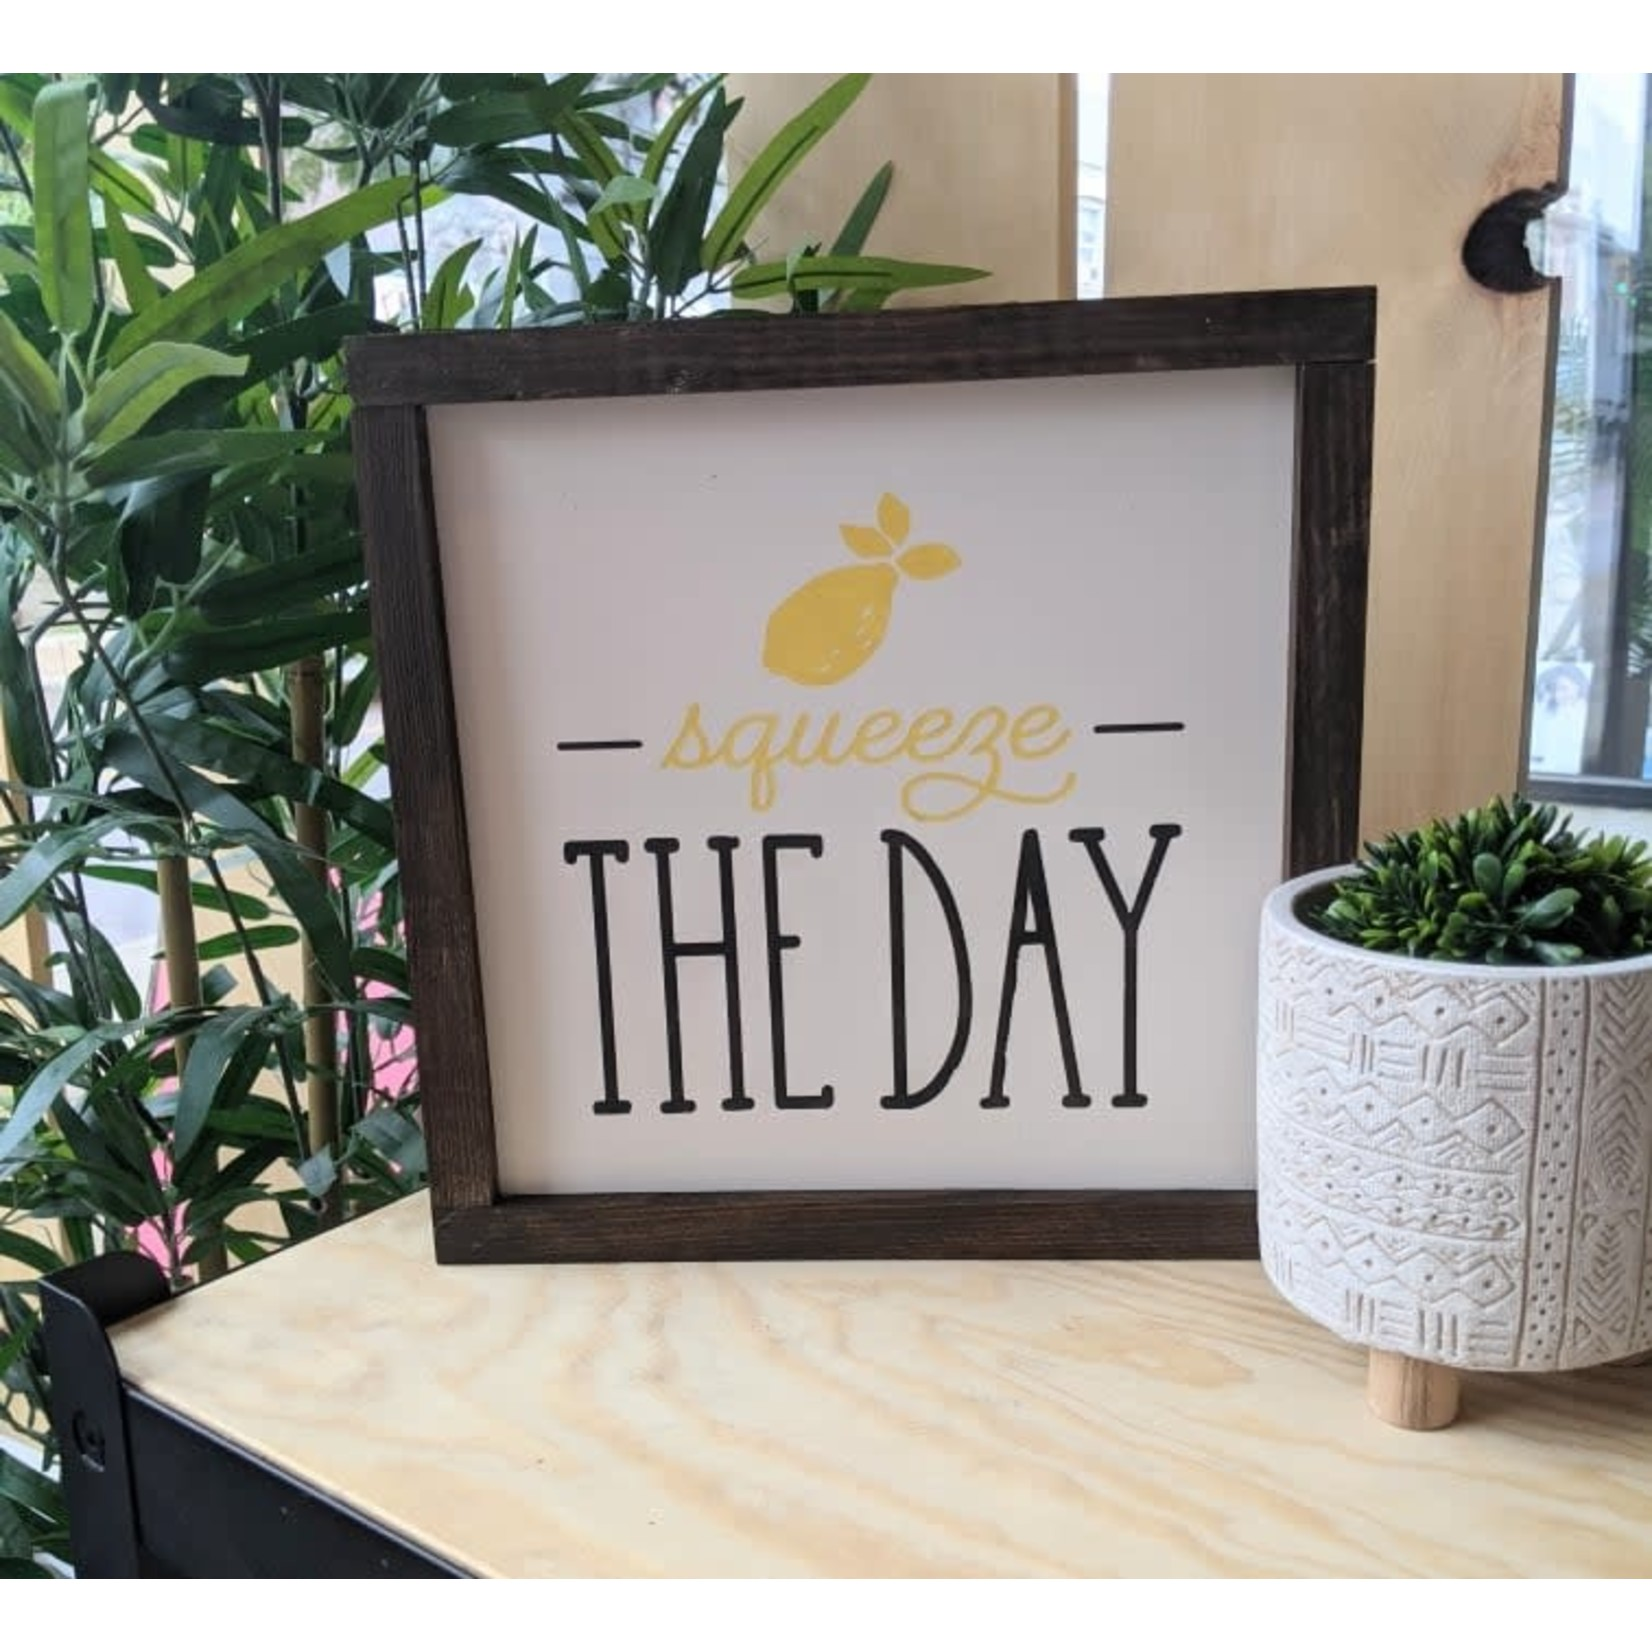 Favourite Things wood Squeeze the day 10x10 framed sign